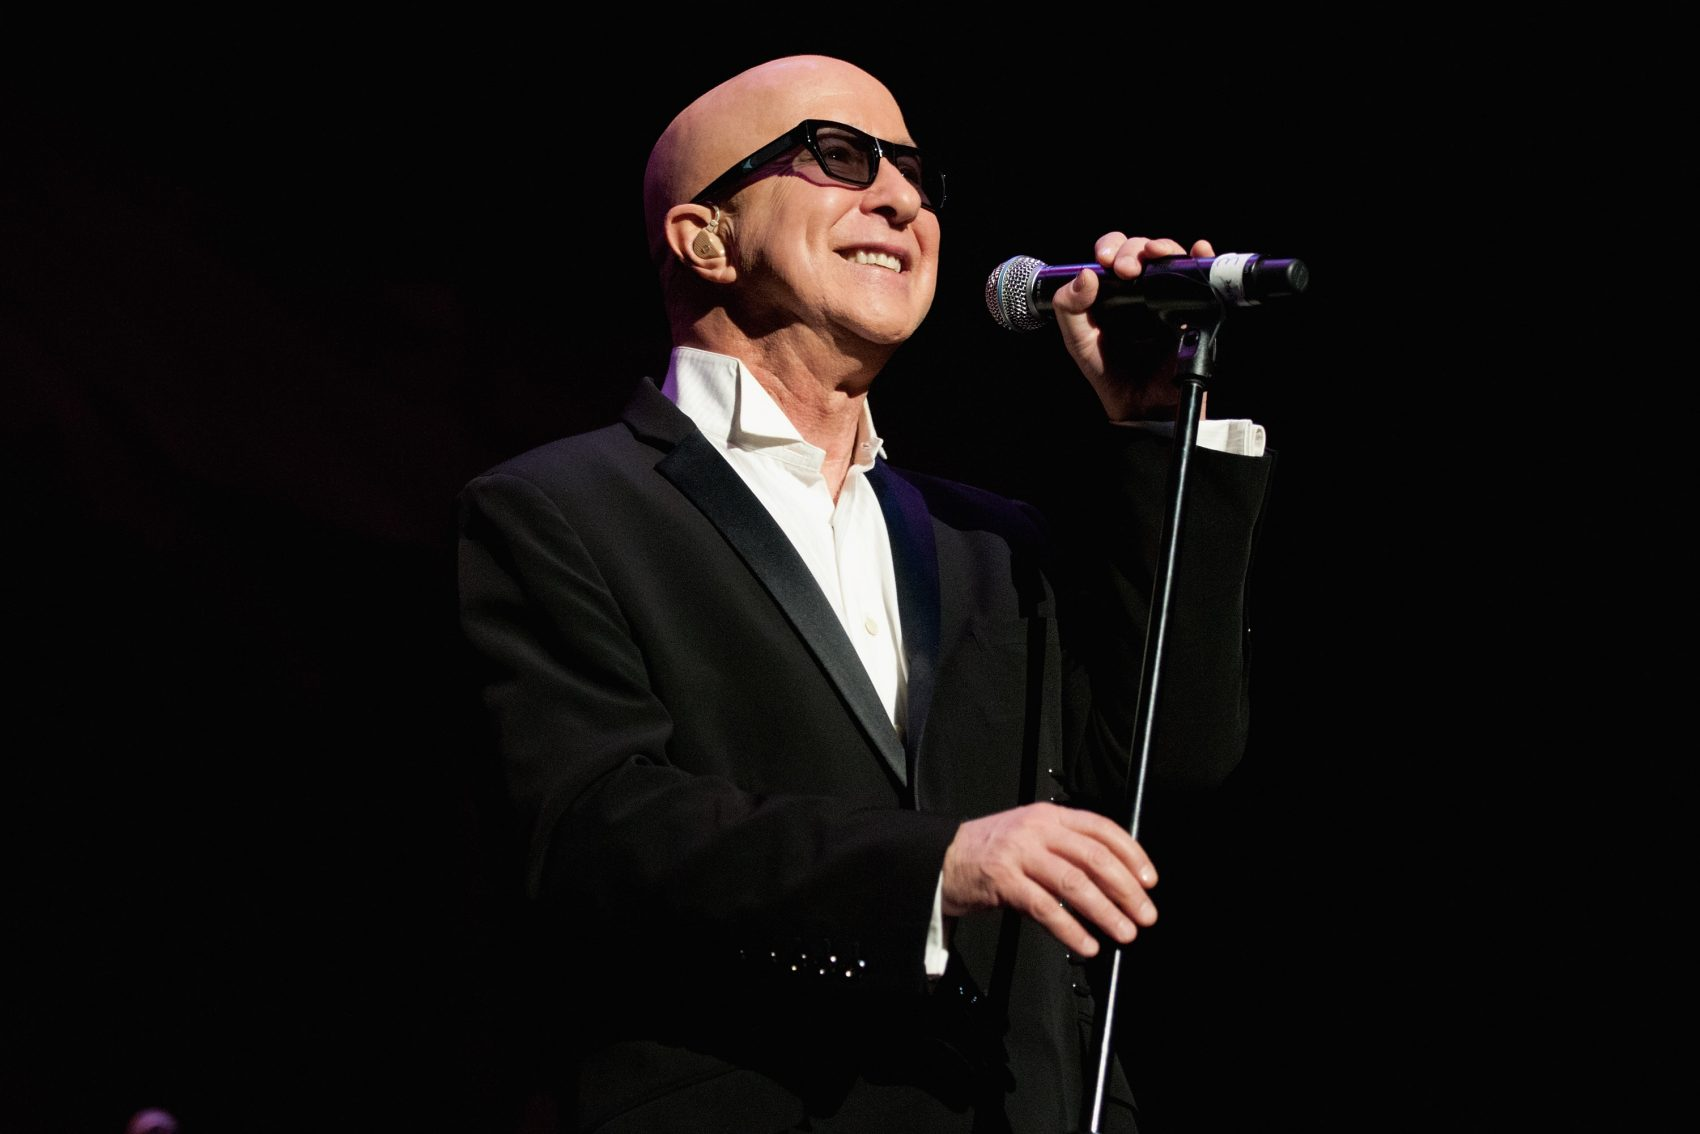 Paul Shaffer onstage in 2012. (Daniel Boczarski/Getty Images)